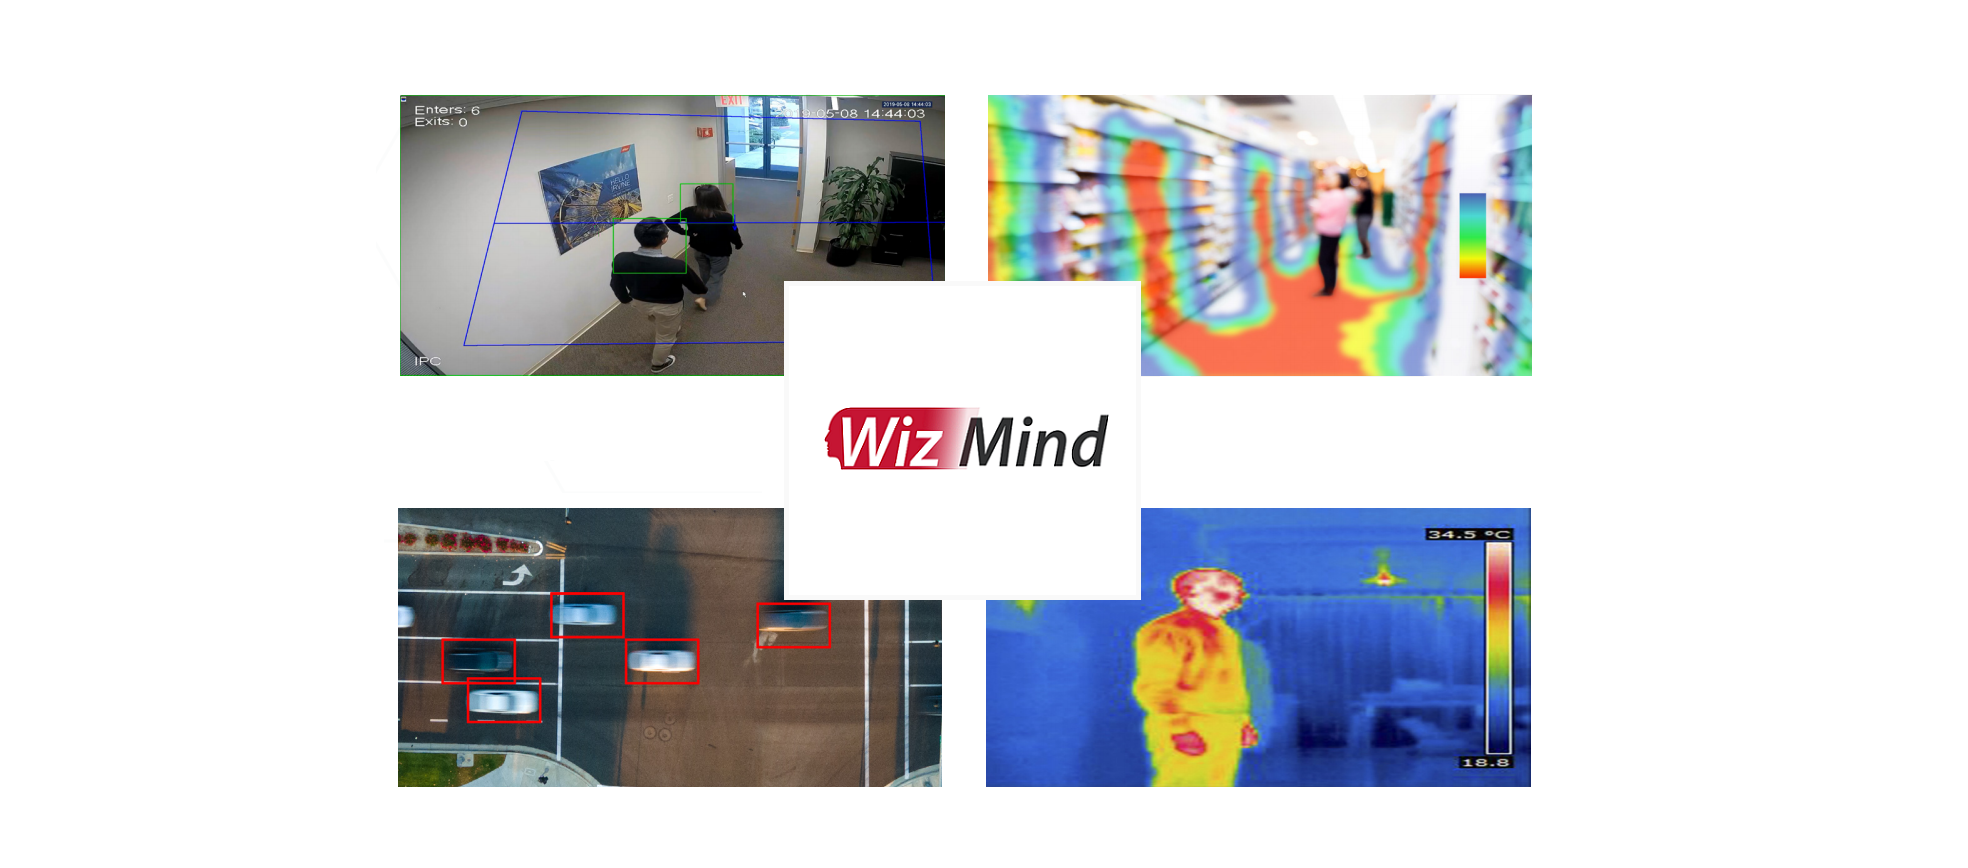 Meet WizMind, the high-end AI camera series for large installations